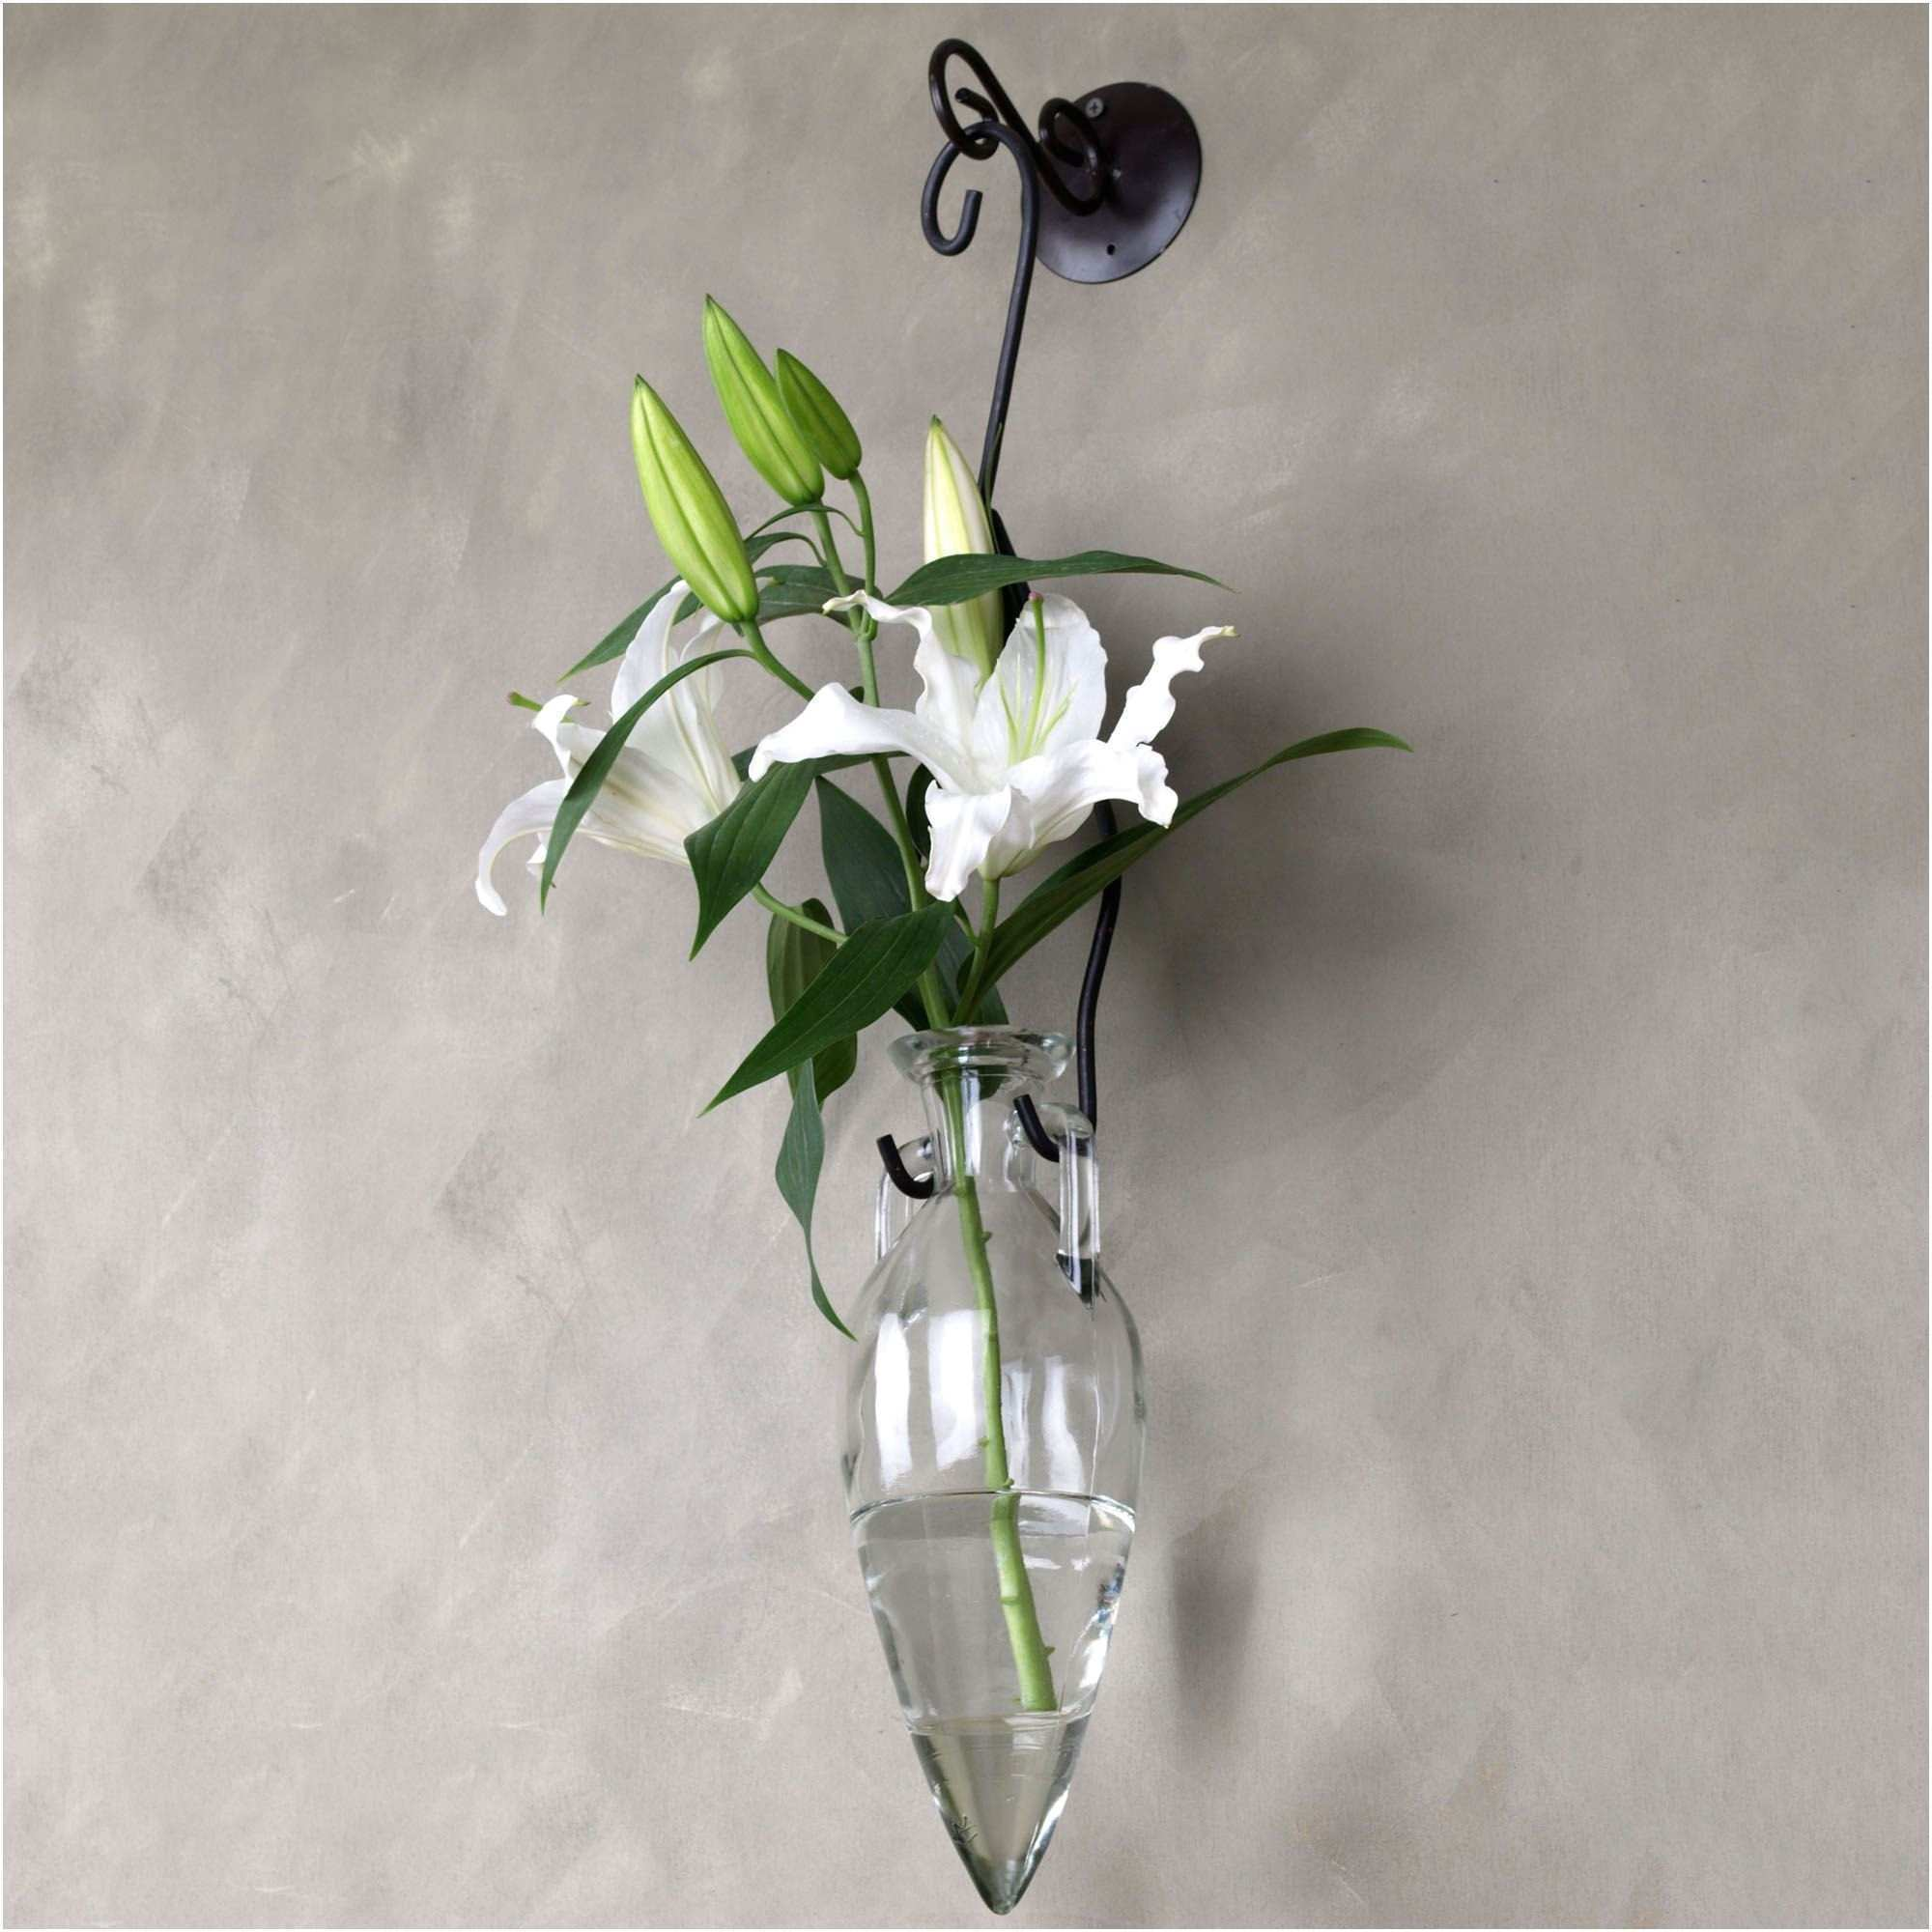 And Sign For Wedding Unbelievable H Vases Wall Hanging Flower Vase